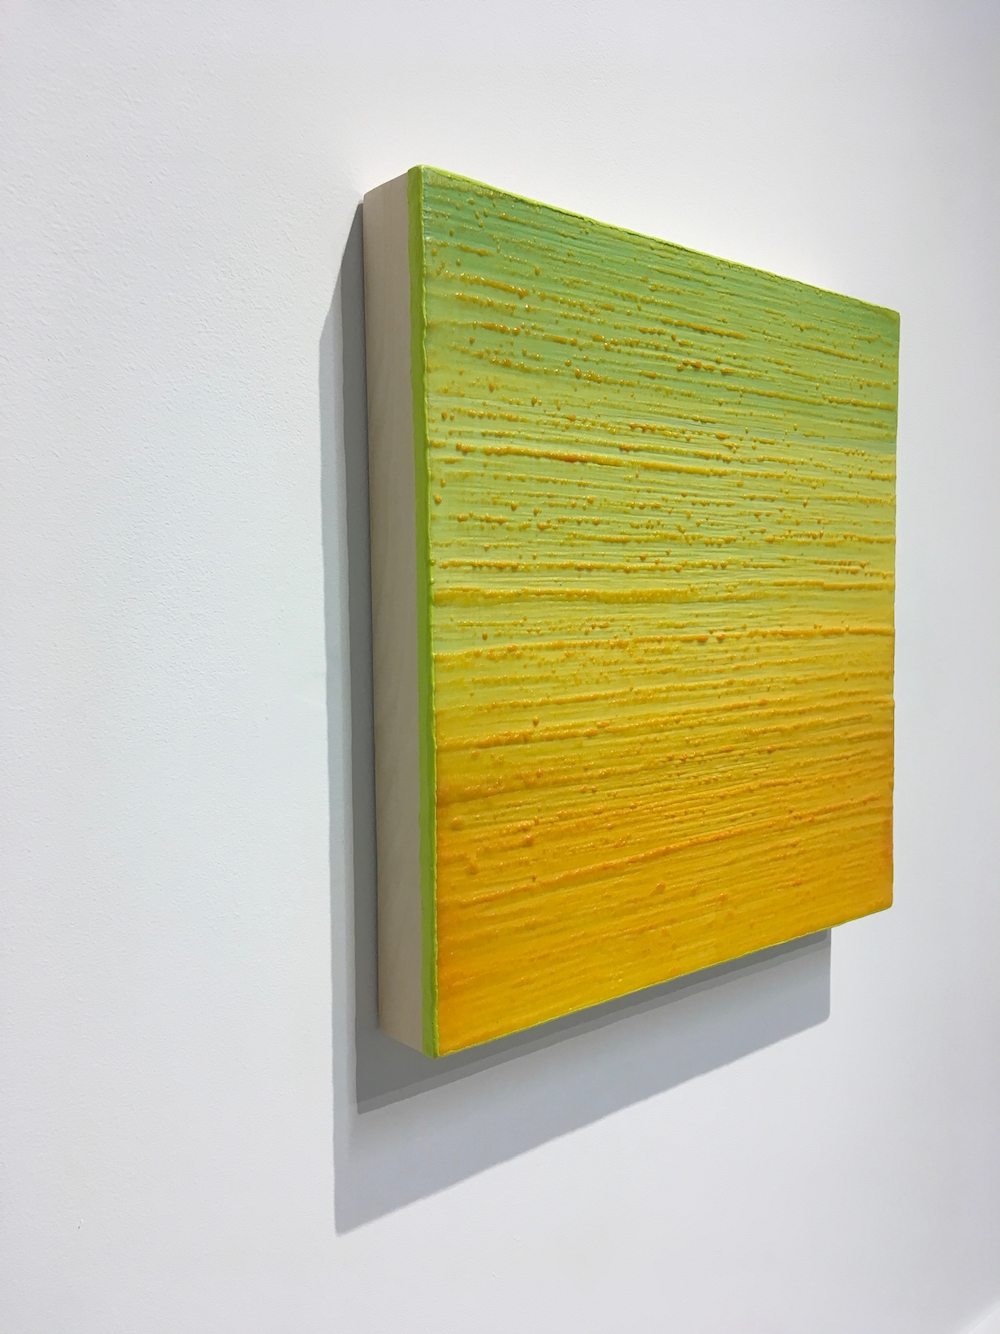 Silk Road 252  (side view), 2015, encaustic (pigmented beeswax) on panel, 12 x 12 inches, $2400.